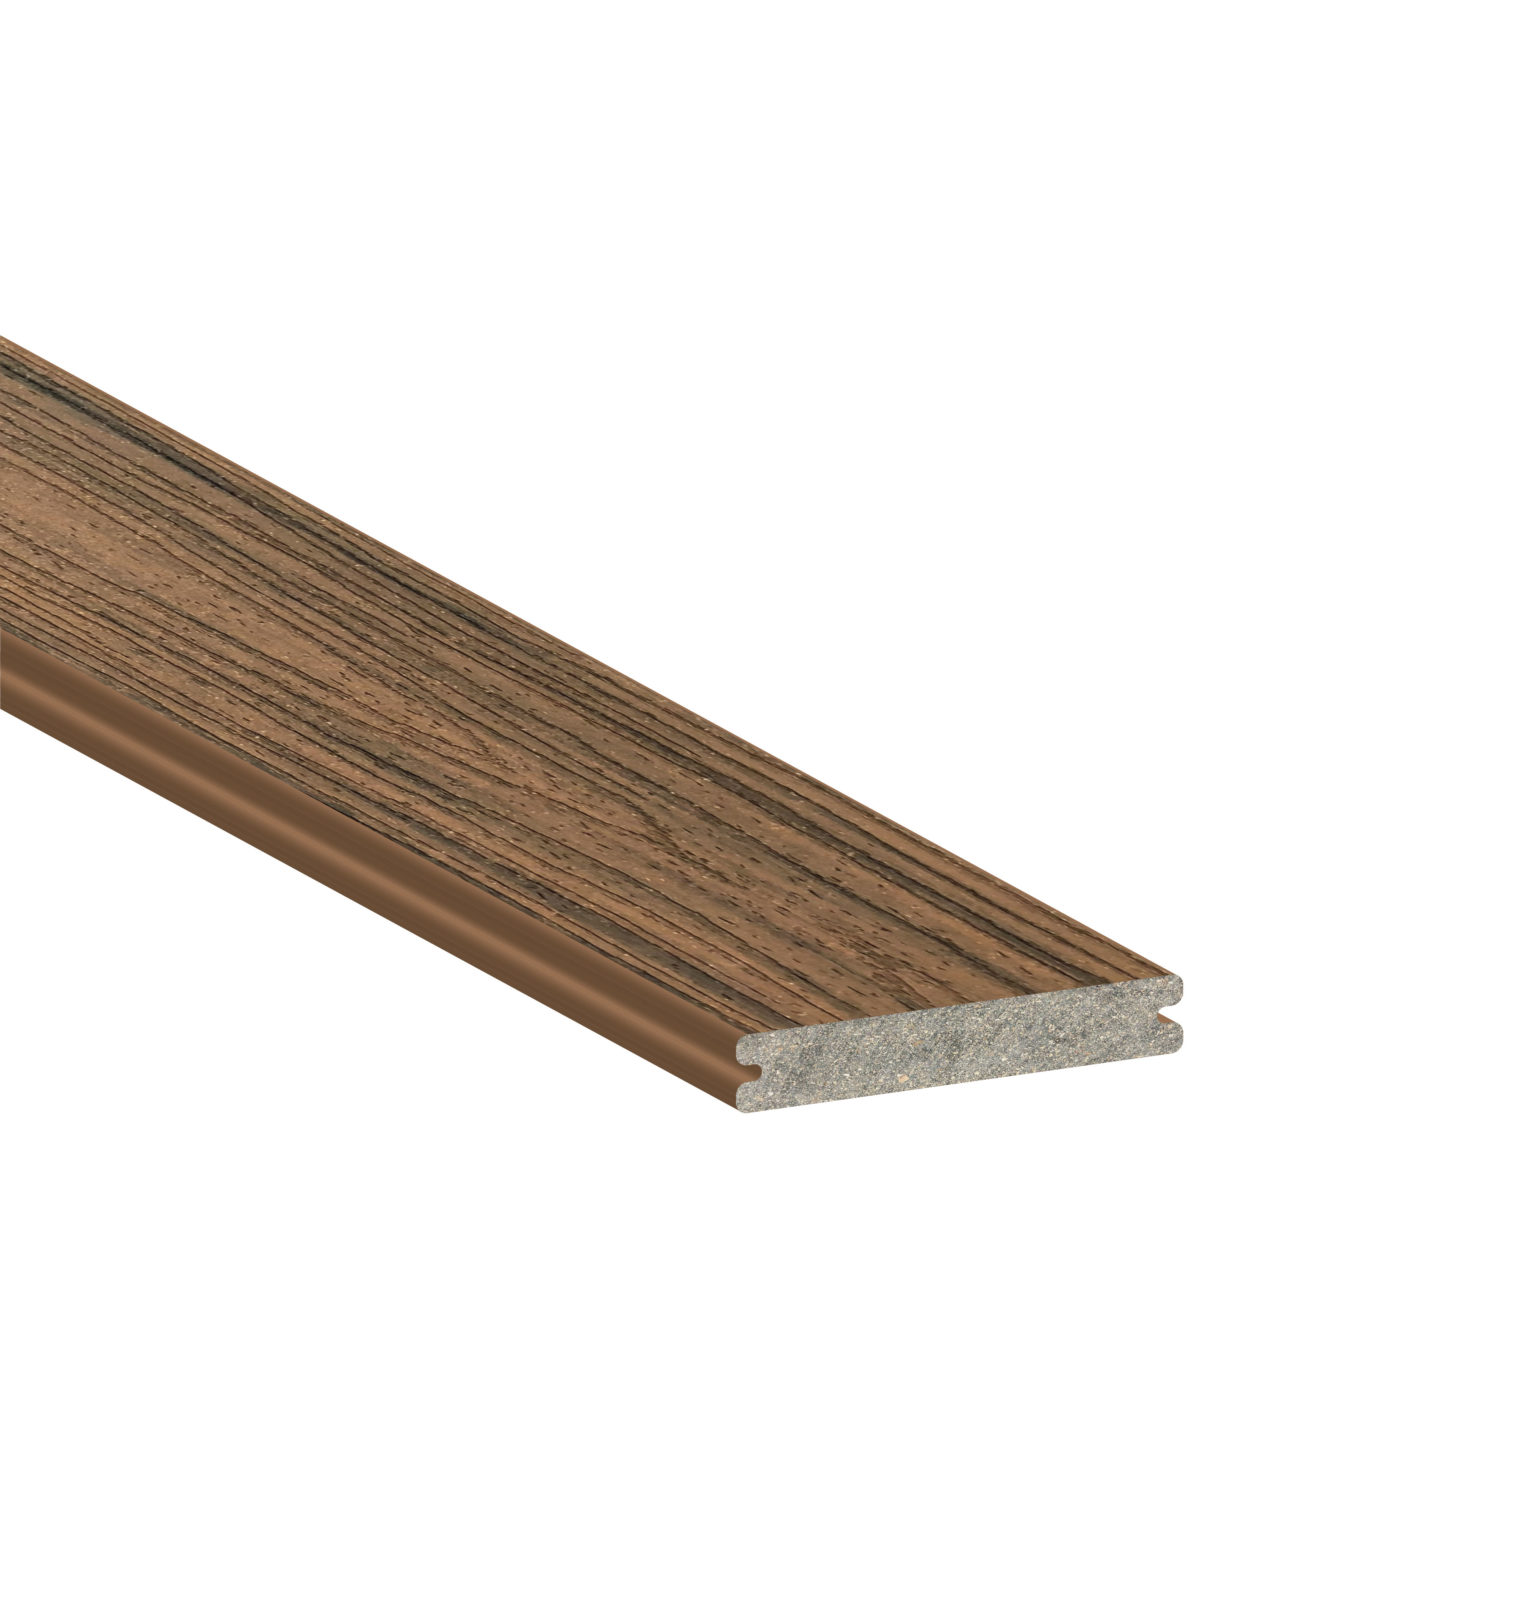 Trex transcend tropics spiced rum grooved 12 39 schillings for Who makes tropics decking